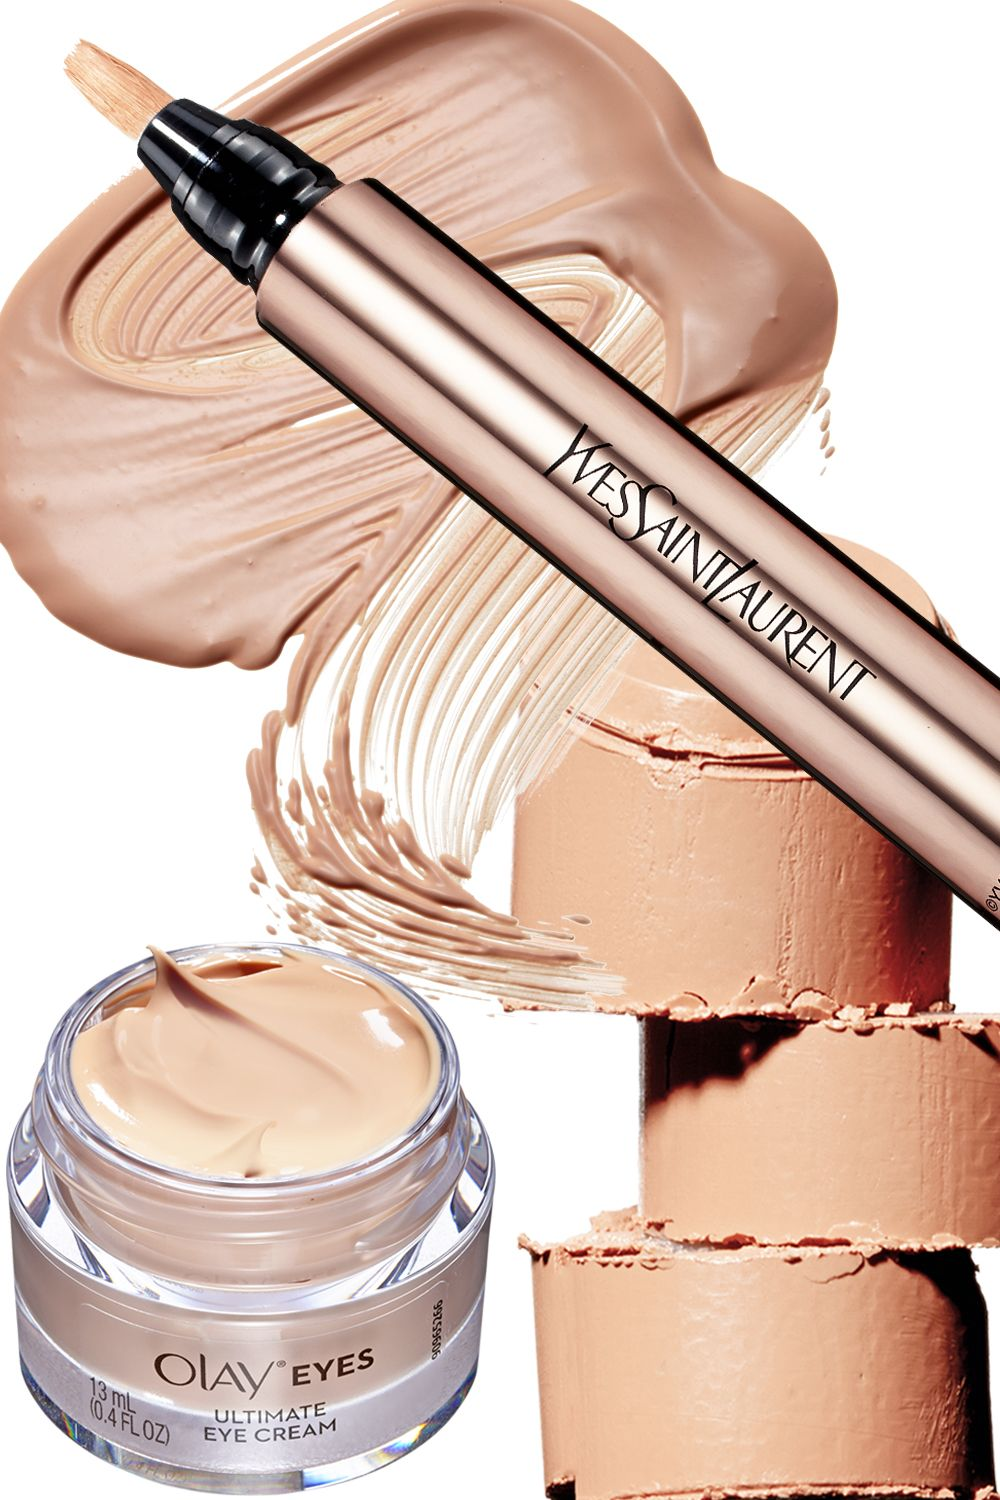 """<p>Peachy color corrector hides even the most egregious dark circles. Swipe it on before applying concealer. Tip: Under-eye darkness is often caused by blood pooling beneath the skin, which becomes thinner and more transparent over time. Fight it with an eye cream that contains niacinamide&#x3B; it helps densify your skin's barrier.</p><p><em data-redactor-tag=""""em"""" data-verified=""""redactor""""><br></em></p><p><em data-redactor-tag=""""em"""" data-verified=""""redactor"""">From top,&nbsp&#x3B;clockwise:&nbsp&#x3B;<strong data-redactor-tag=""""strong"""" data-verified=""""redactor"""">Yves Saint Laurent</strong> Touche Éclat Neutralizers in Abricot Bisque, $38, <a href=""""http://www.yslbeautyus.com/touche-%C3%A9clat/141YSL.html?dwvar_141YSL_color=1%20Luminous%20Radiance&amp&#x3B;gclid=CjwKEAjw97K_BRCwmNTK26iM-hMSJABrkNtb6COkY2px-VtfCWHkBEisoXqfion7ezsjjjU_XdzNjhoCvN3w_wcB&amp&#x3B;cm_mmc=cpc-_-googleSearchBrand-_-YSL%20Make%20Up%20-%20Ph_Product%20-%20Touche%20Eclat2-_-kw%3A%20yves%20st%20laurent%20touche%20eclat"""" target=""""_blank"""">yslbeautyus.com</a>&#x3B;&nbsp&#x3B;<strong data-redactor-tag=""""strong"""" data-verified=""""redactor"""">Dior</strong> Fix It 2-in-1 Prime and Colour Correct in Apricot # 003<span>, $36, <a href=""""http://www.dior.com/beauty/en_us/fragrance-beauty/makeup/face/primers/pr-primers-y0929603-2-in-1-prime-colour-correct-face-eyes-lips.html?gclid=CjwKEAjw97K_BRCwmNTK26iM-hMSJABrkNtbGYO4Jfy4lwzjpU9T6NmLG-GlG1ipLgo4j3yZJtsWgRoClPvw_wcB"""" target=""""_blank"""">dior.com</a>&#x3B;&nbsp&#x3B;</span><strong data-redactor-tag=""""strong"""" data-verified=""""redactor"""">Olay</strong> Eyes Ultimate Eye Cream</em><span><em data-redactor-tag=""""em"""" data-verified=""""redactor"""">, $25, <a href=""""http://www.olay.com/en-us/skin-care-products/olay-total-effects-anti-aging-eye-treatment?&amp&#x3B;utm_source=google&amp&#x3B;utm_medium=cpc&amp&#x3B;utm_campaign=Olay_Search_Brand+Awareness.BMM&amp&#x3B;utm_term=%2Bolay%20%2Beyecream&amp&#x3B;utm_content=sT7GihkvW